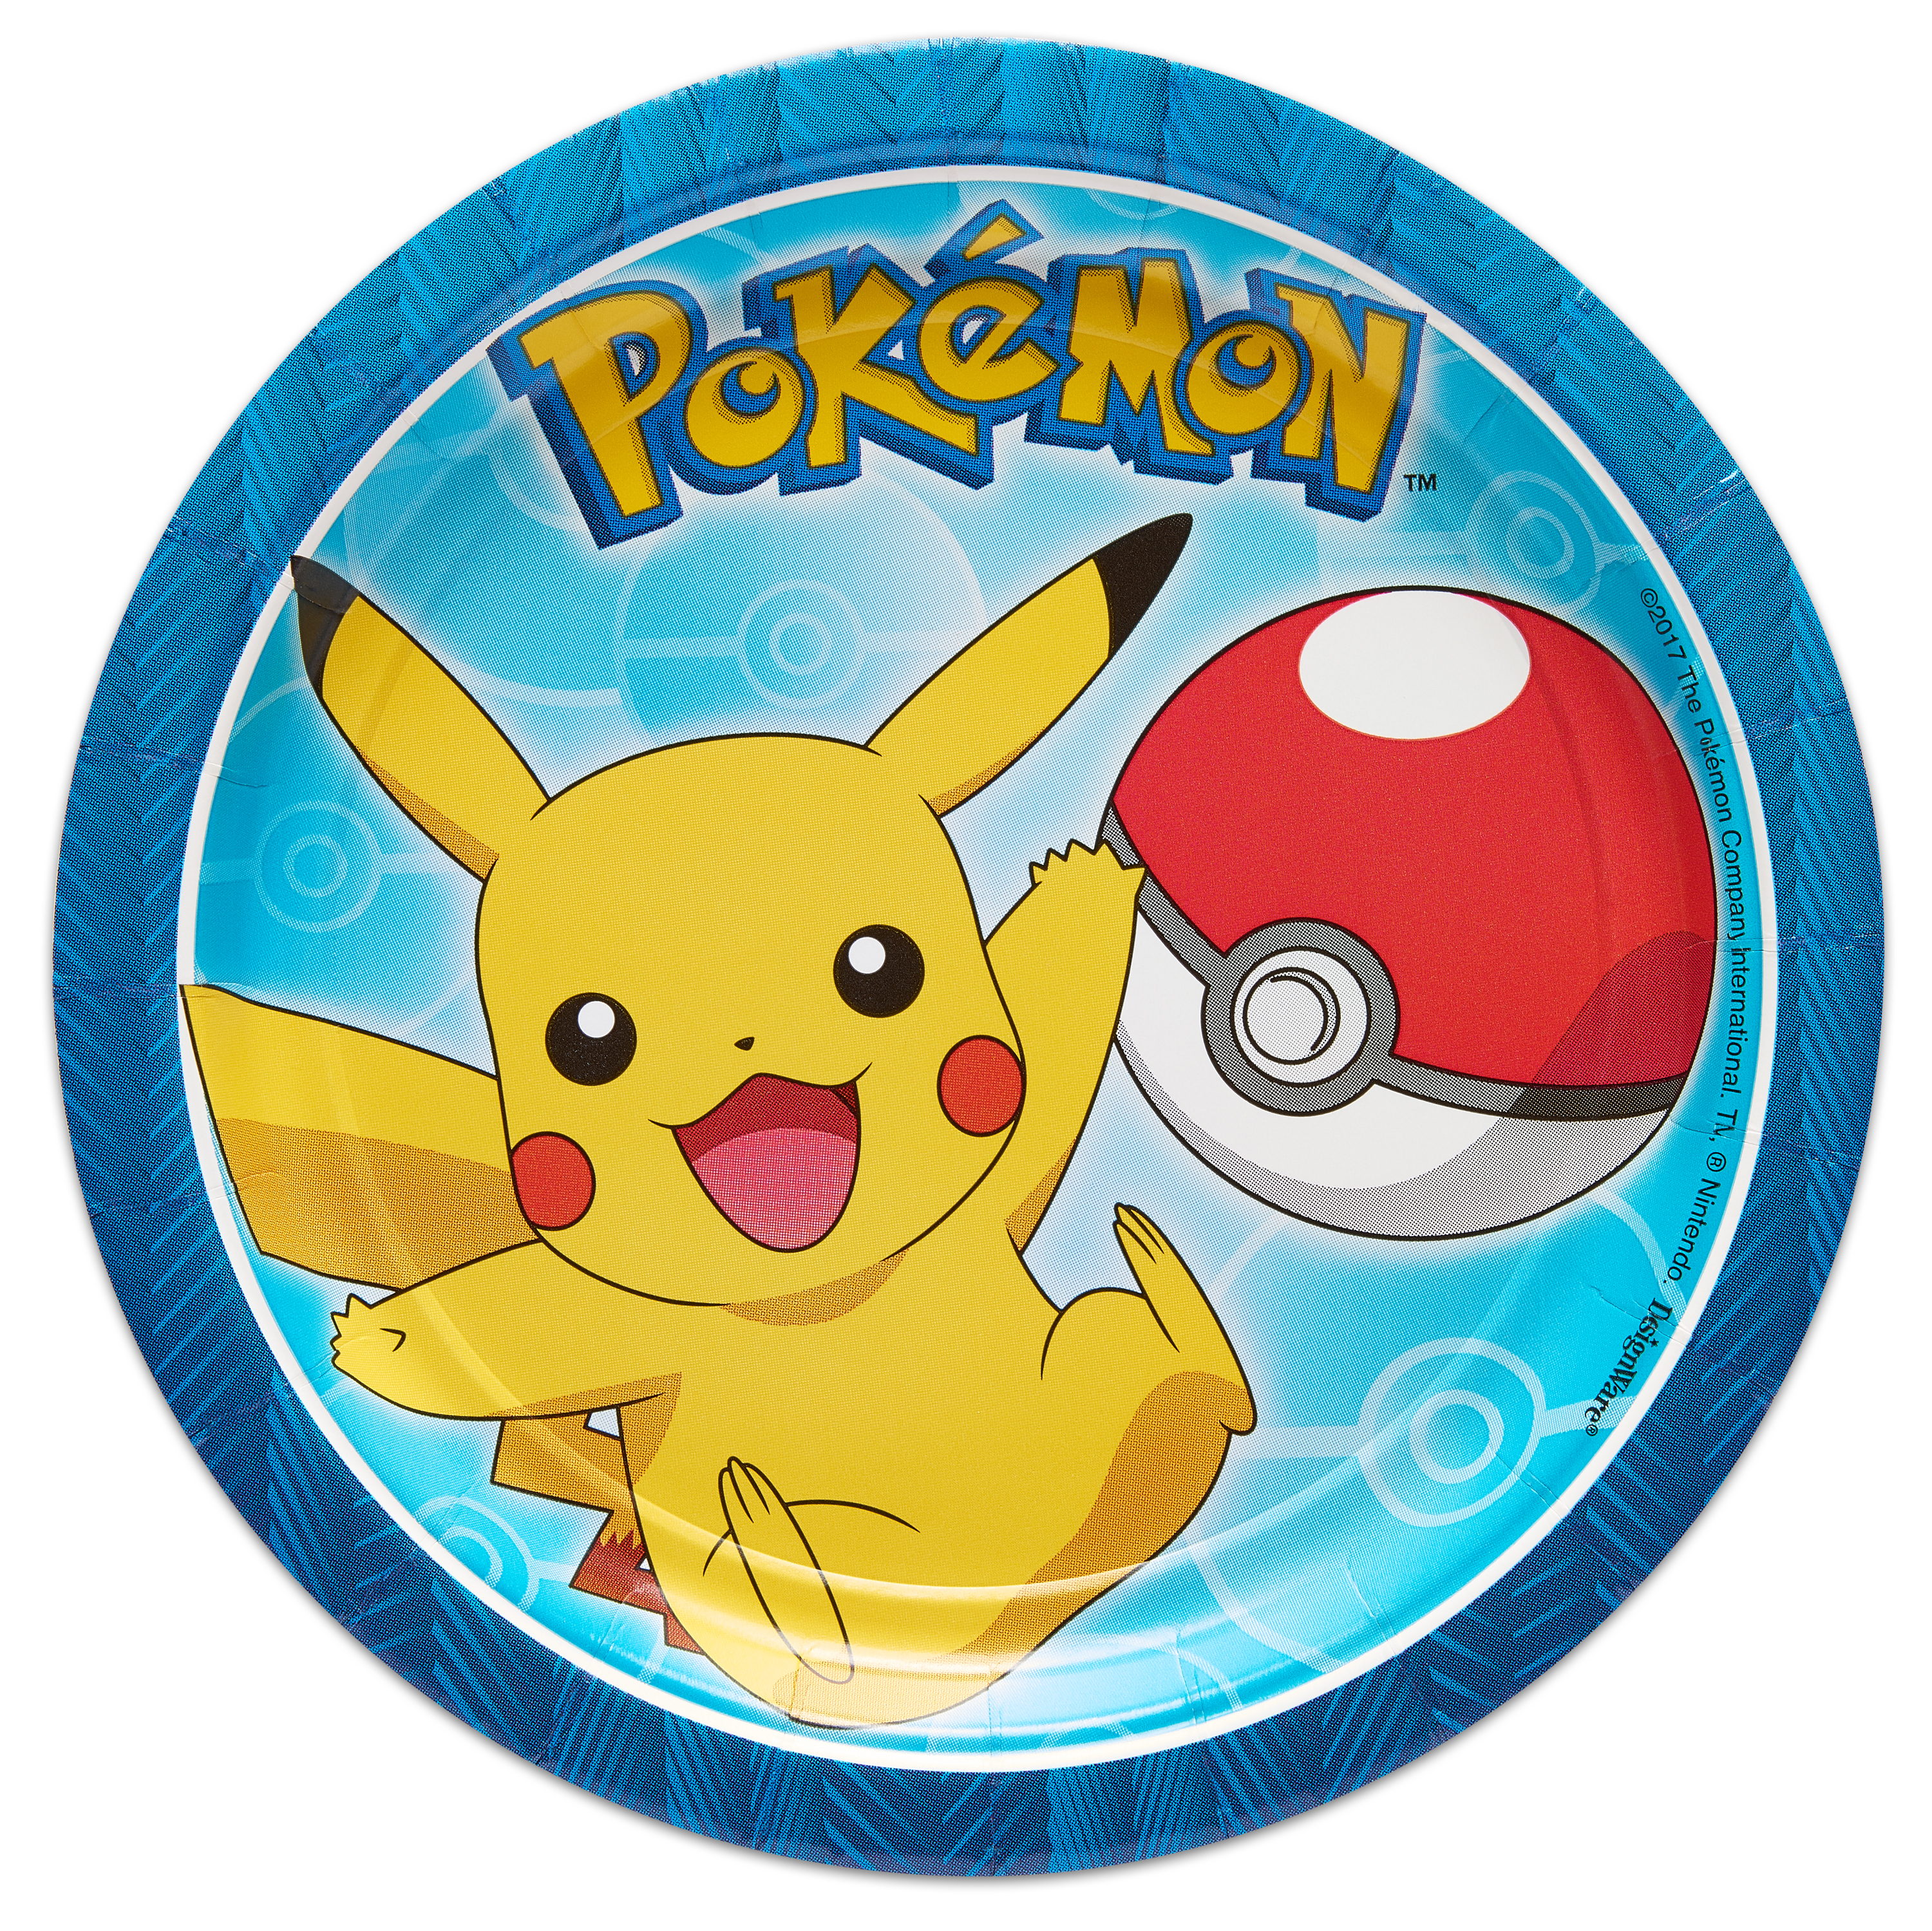 Pokemon Party Paper Round Plate, 7 in, 8ct